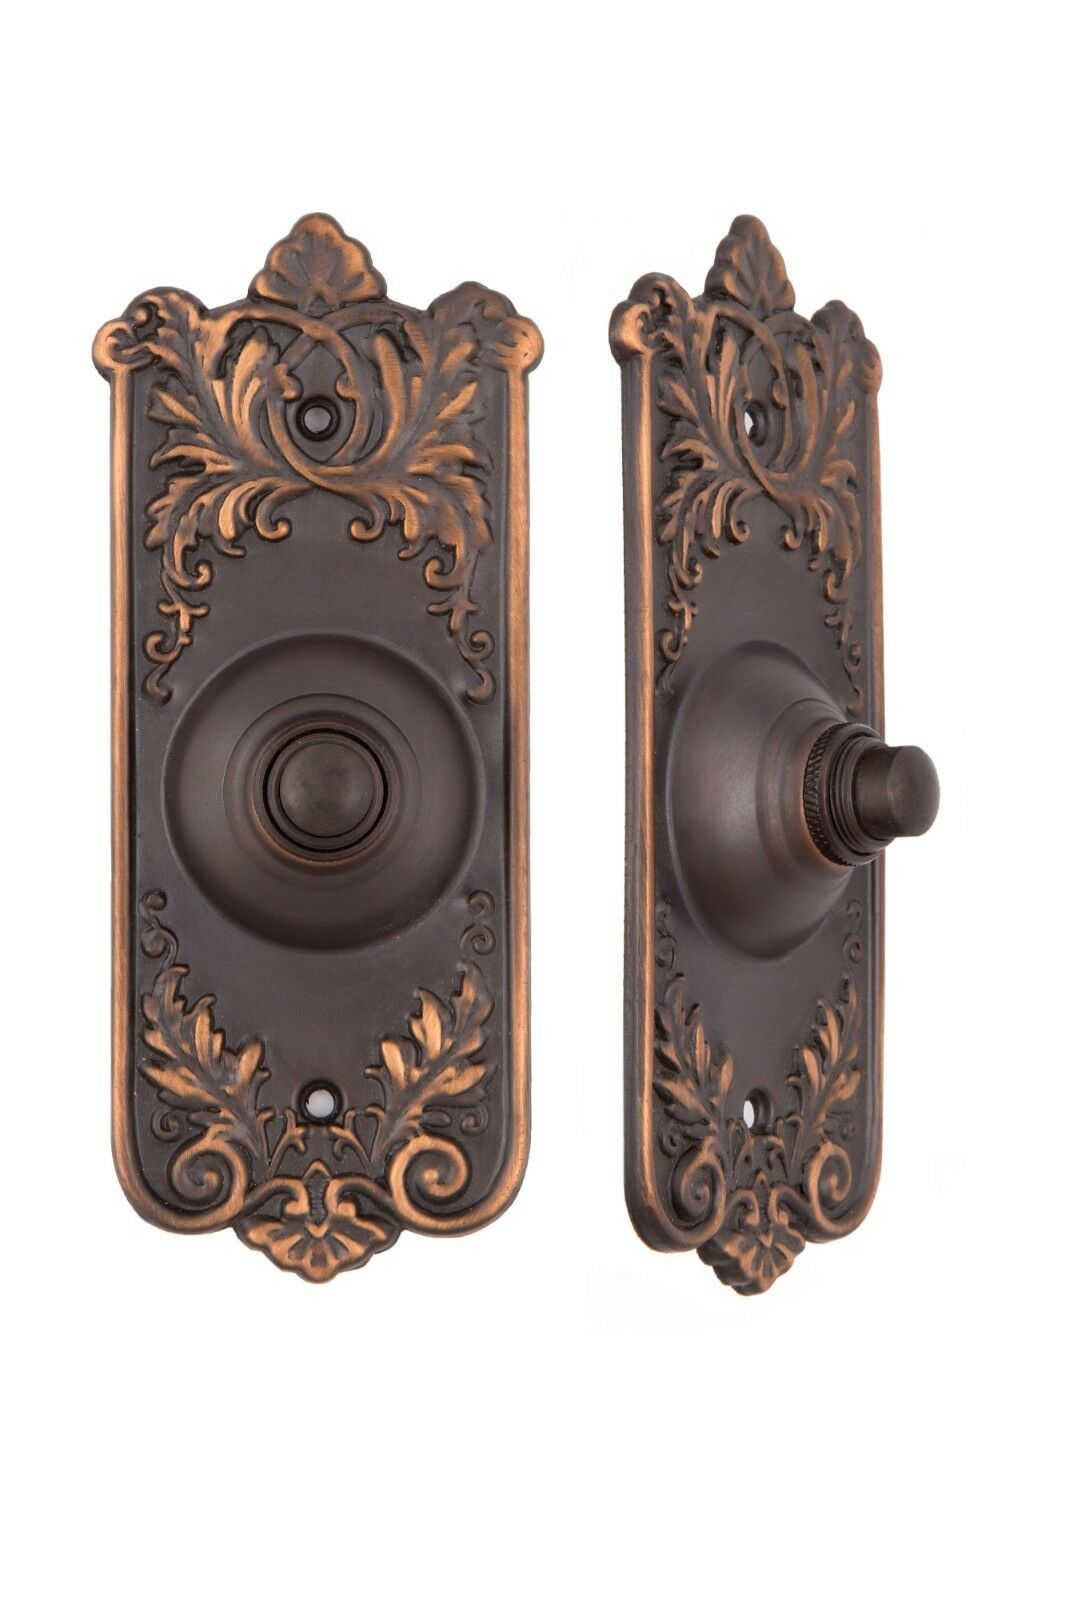 French Lorraine pattern bronze doorbell button